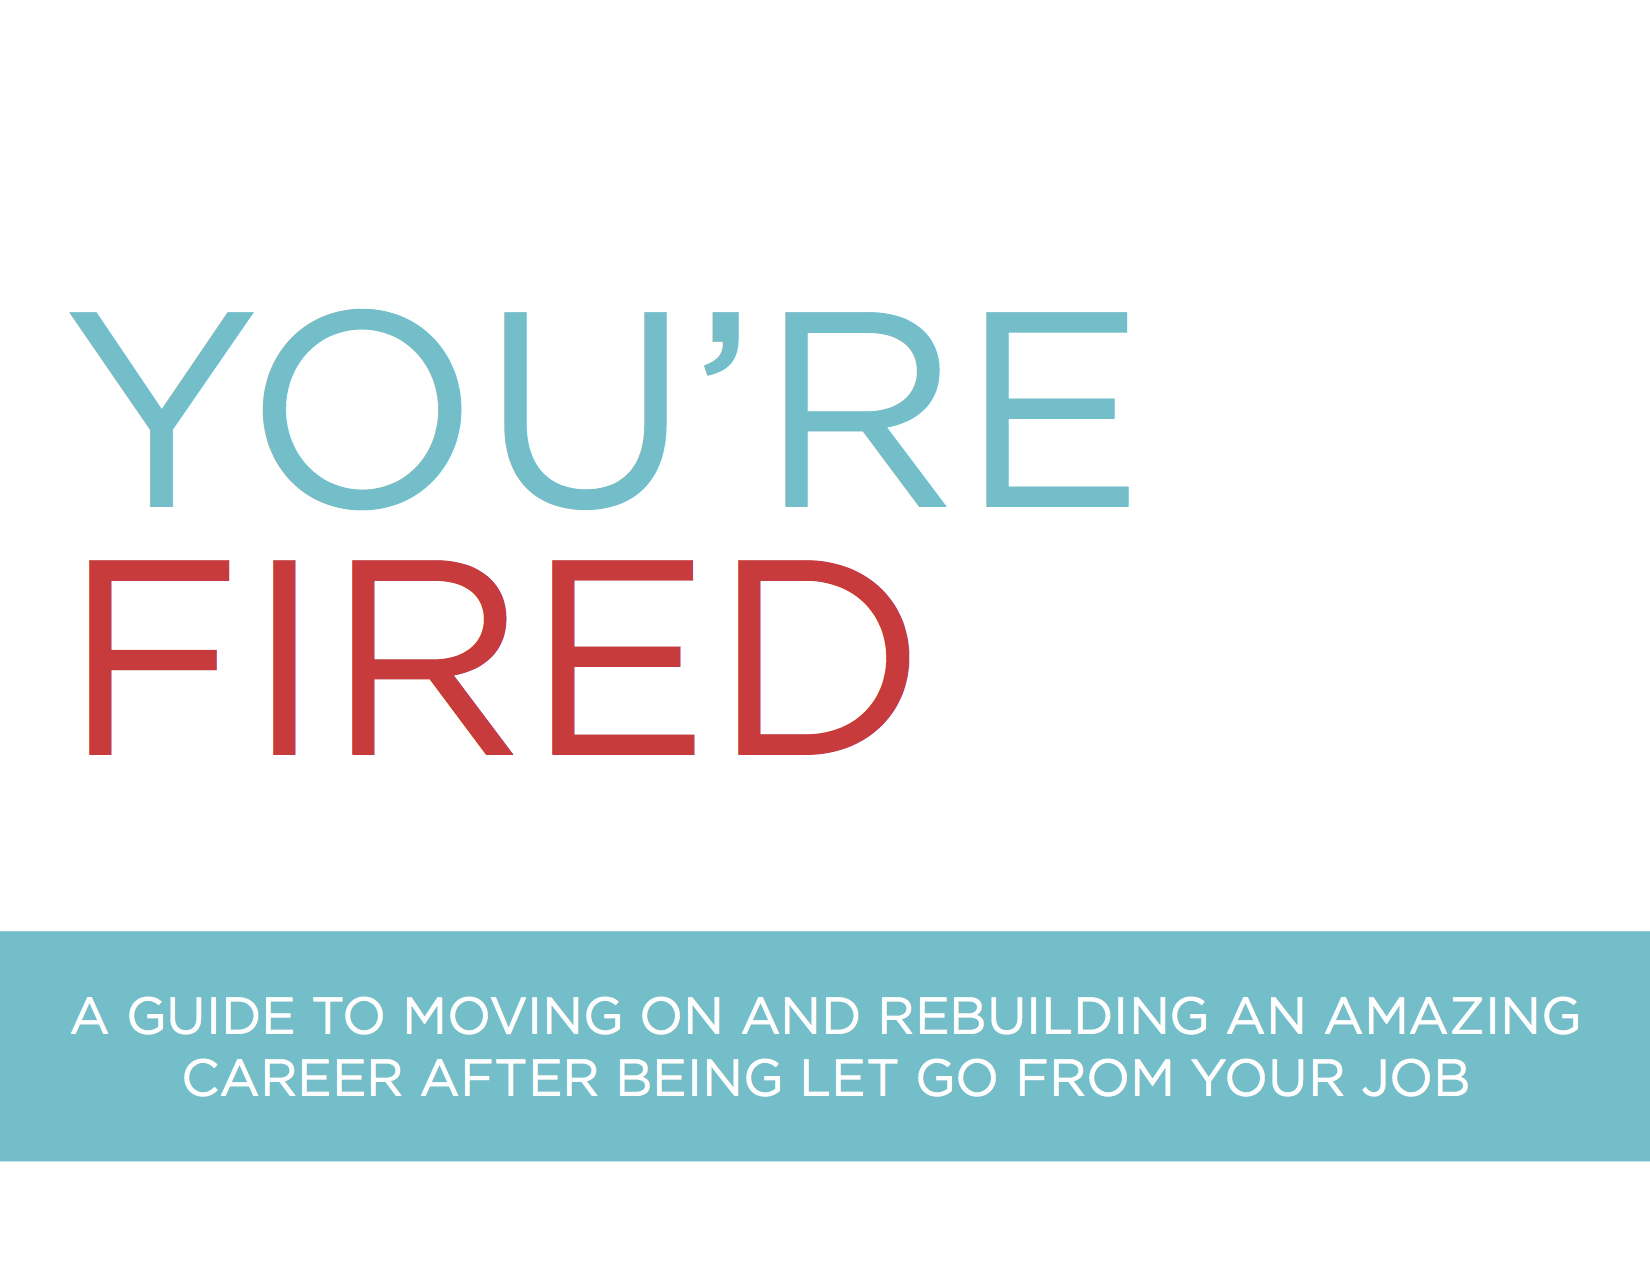 You're fired: a guide to moving on after losing your job